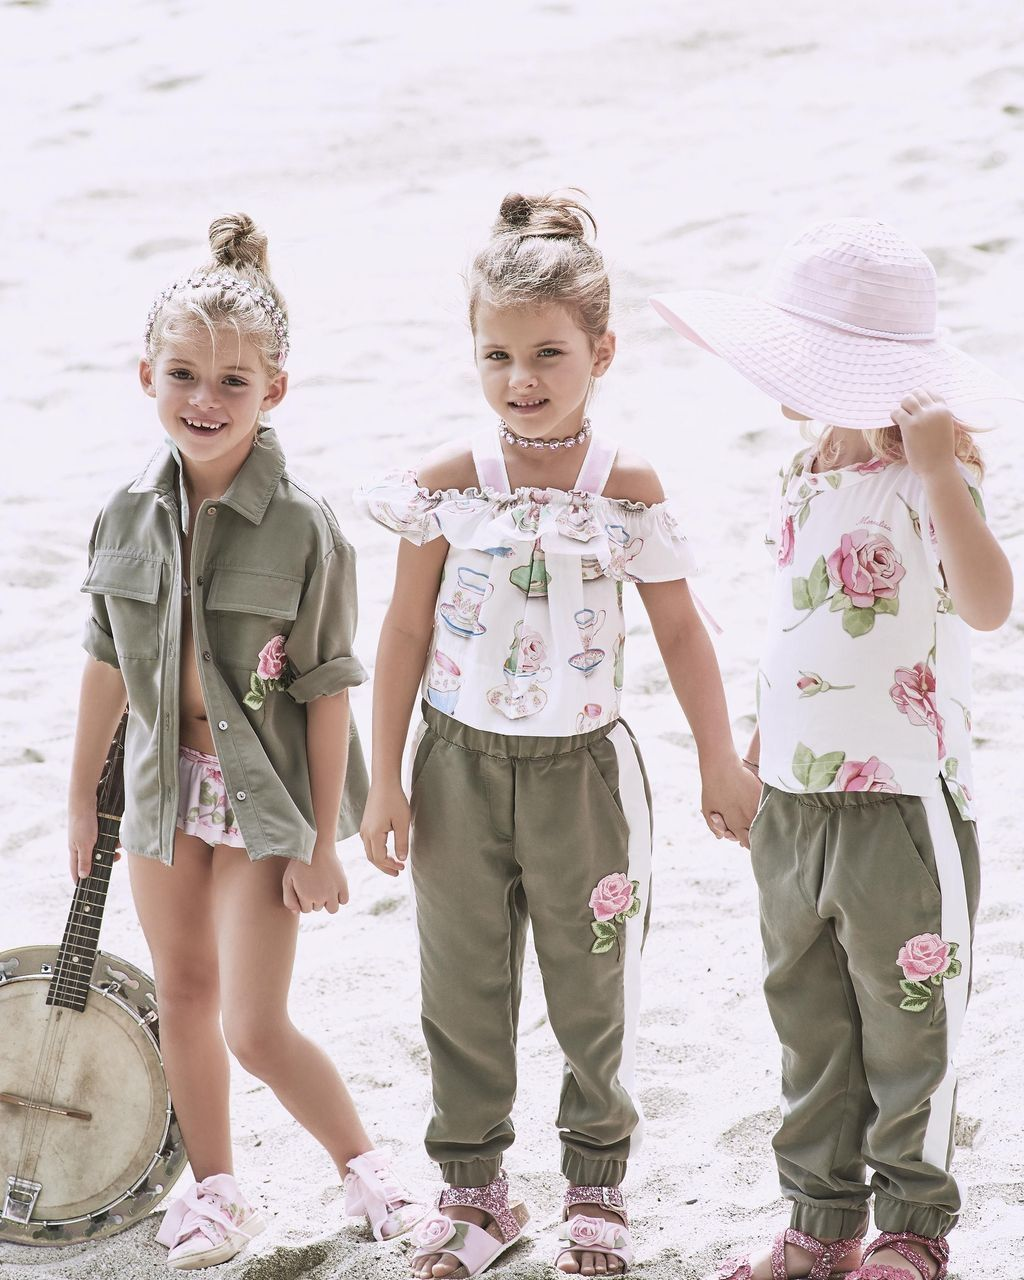 f7a78af4d5da 30+ Newest Fashion Trends Ideas For Spring And Summer